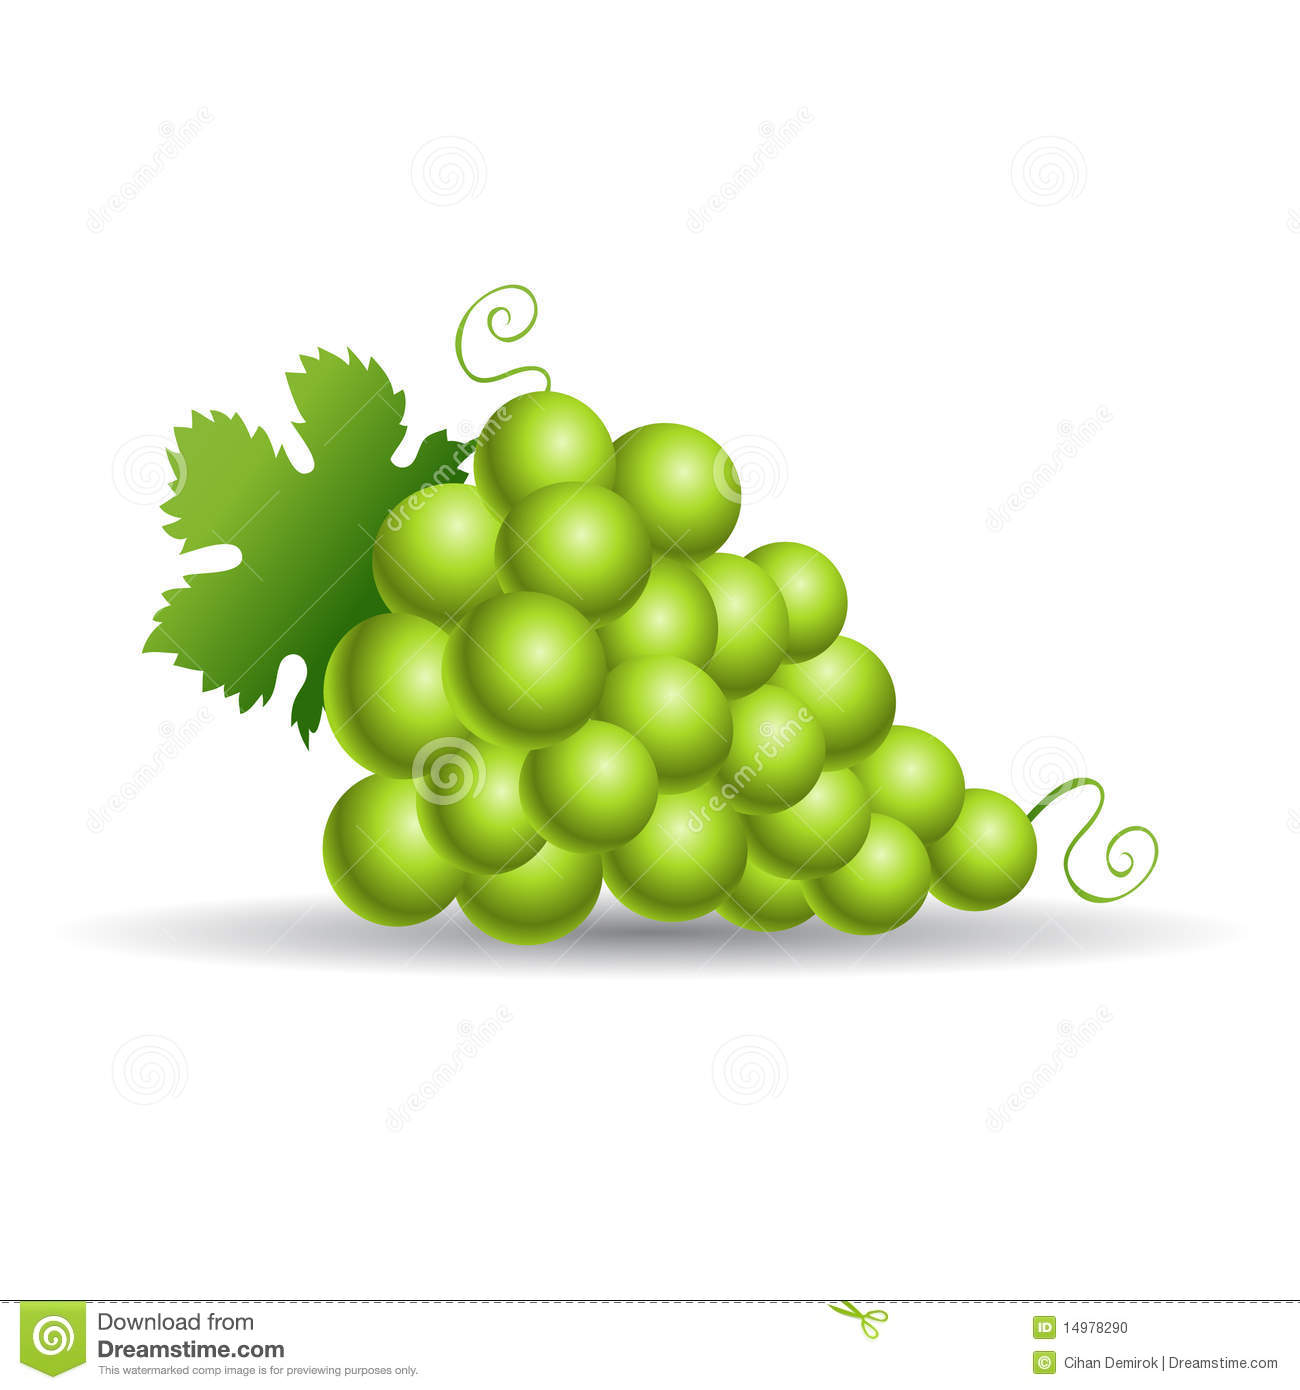 Green grapes clipart - Clipground